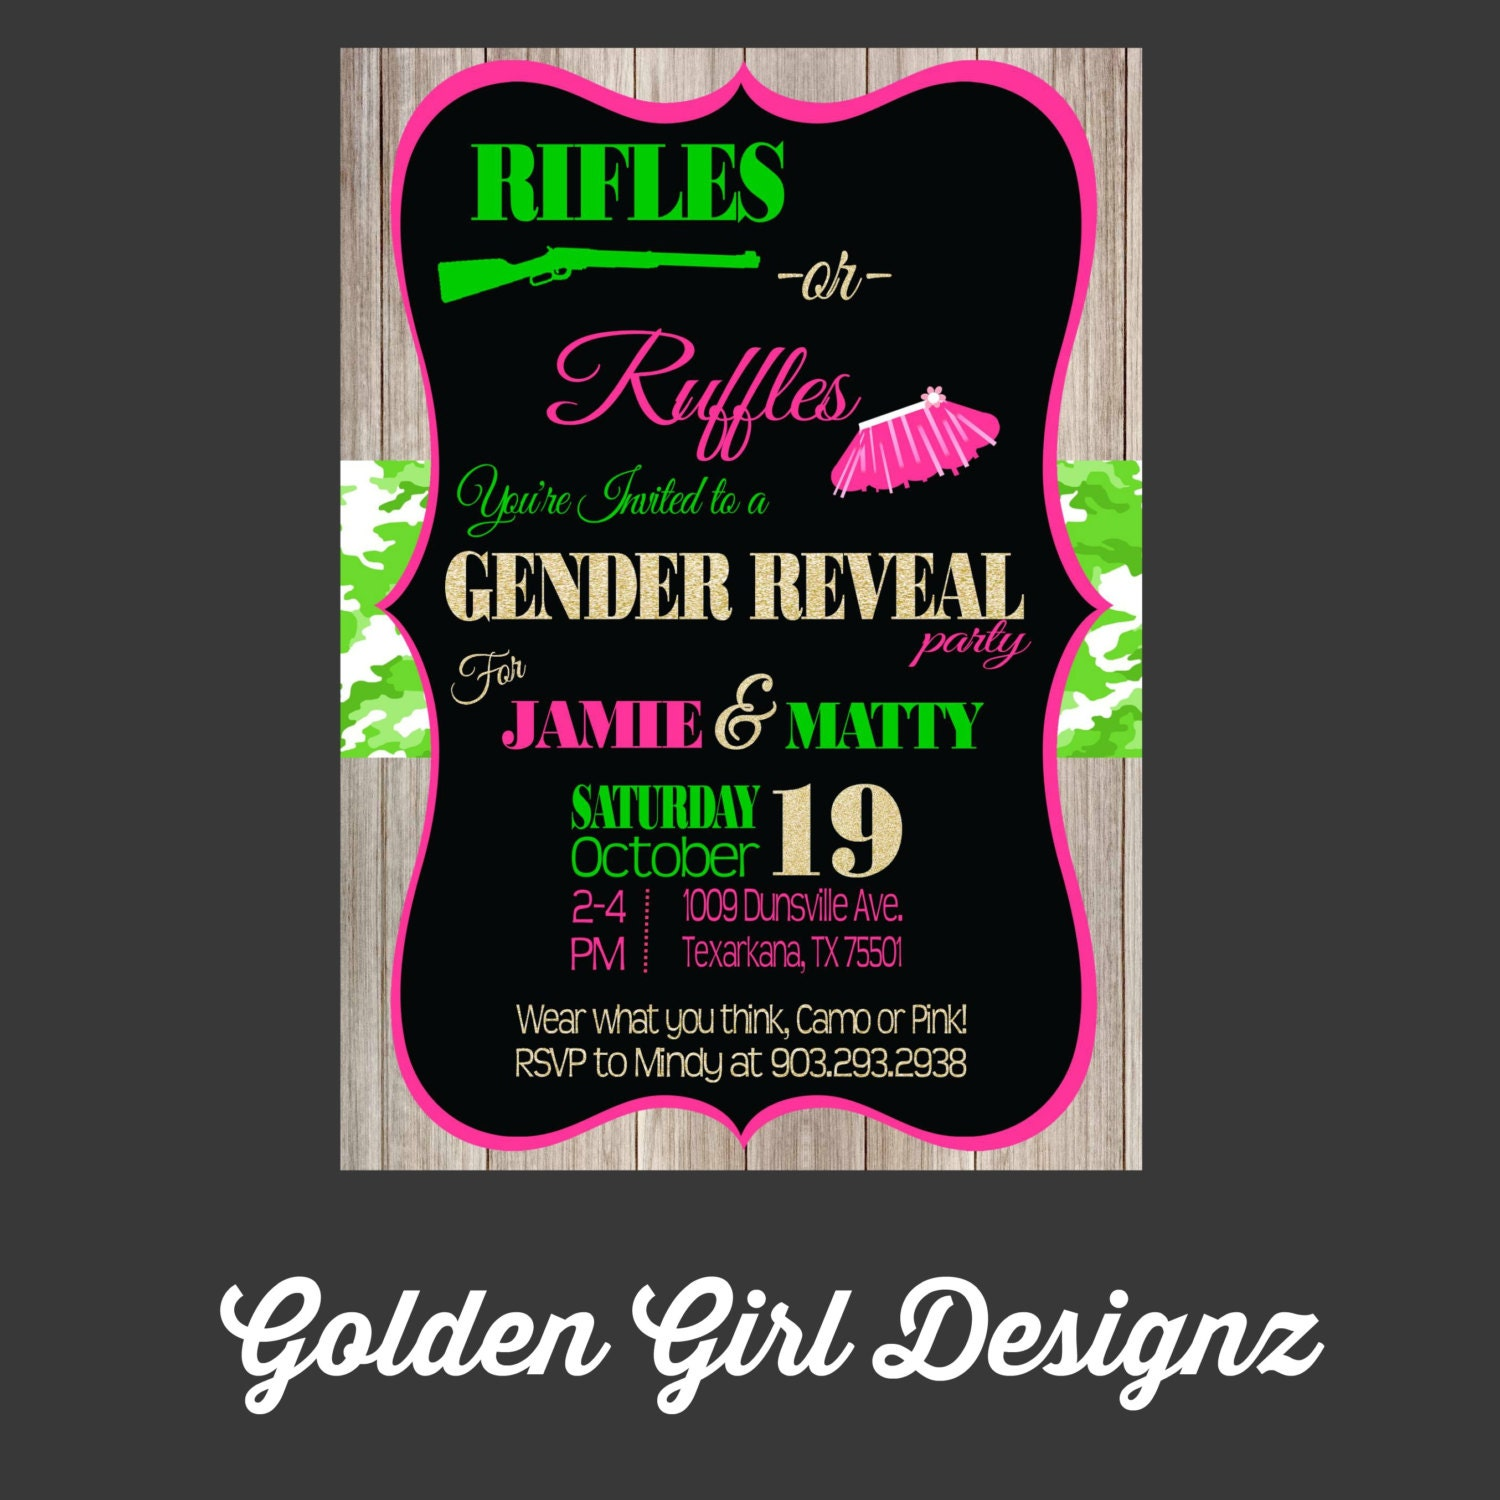 Rifles or Ruffles Gender Reveal Party Invitation camo